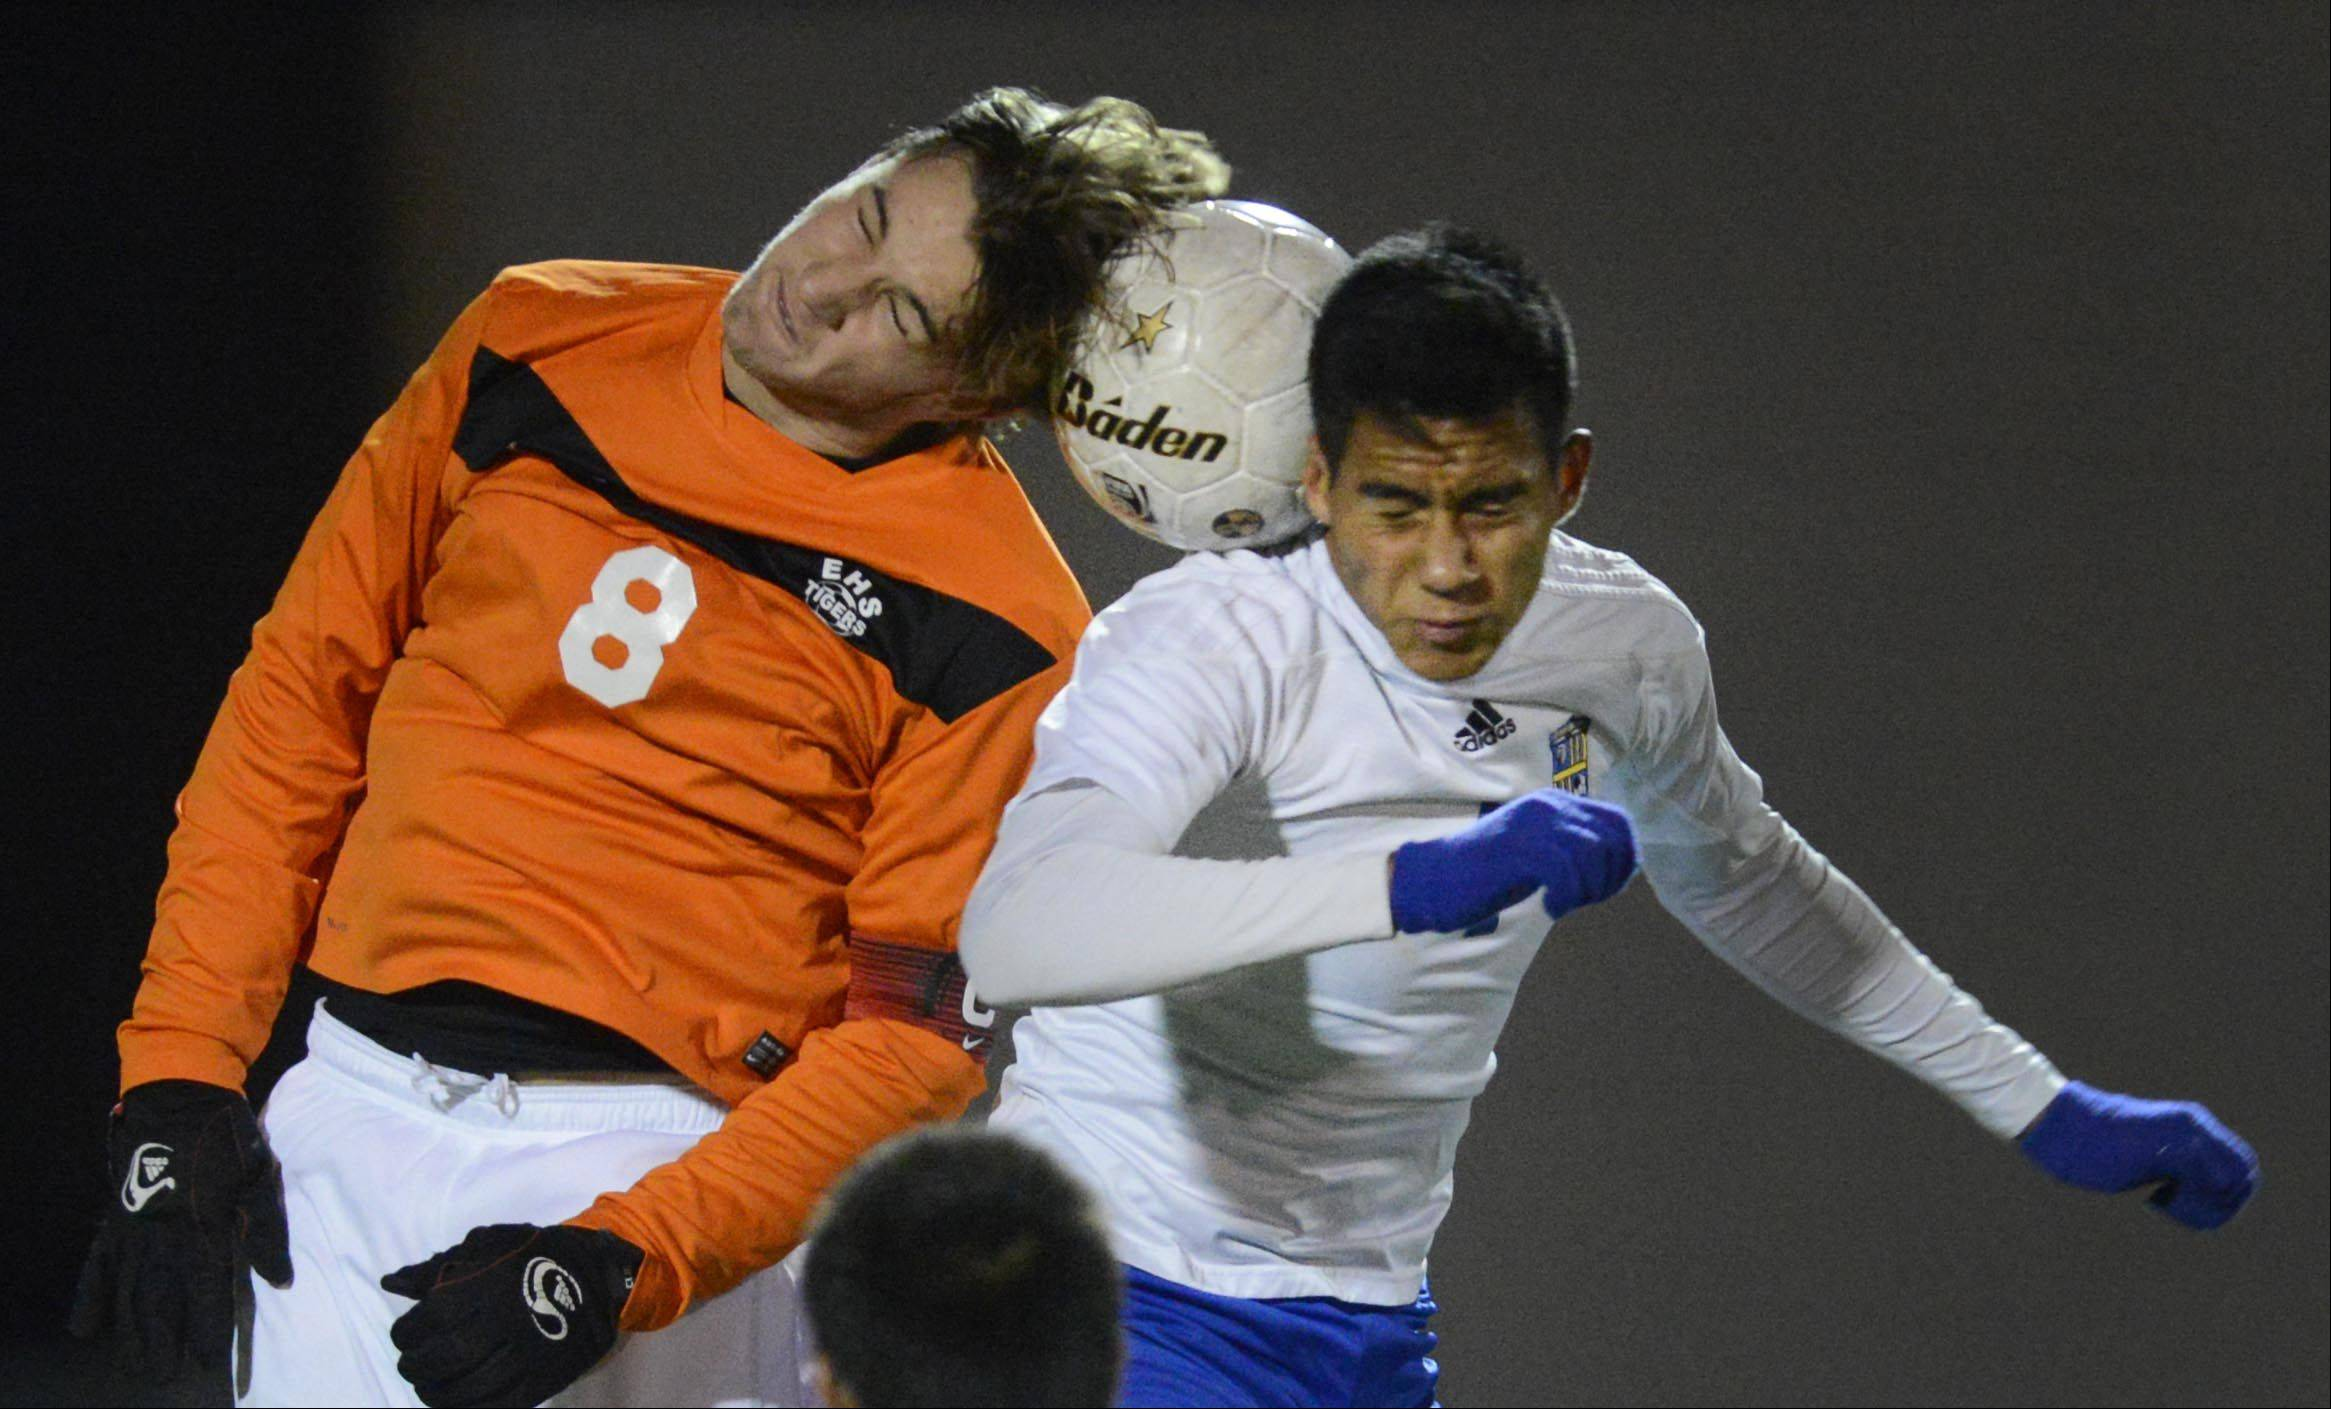 Wheeling's Francisco Arellano and Edwardsville's Josh Kowalis compete for a header in the Class 3A boys soccer state championship game Saturday night in Hoffman Estates.